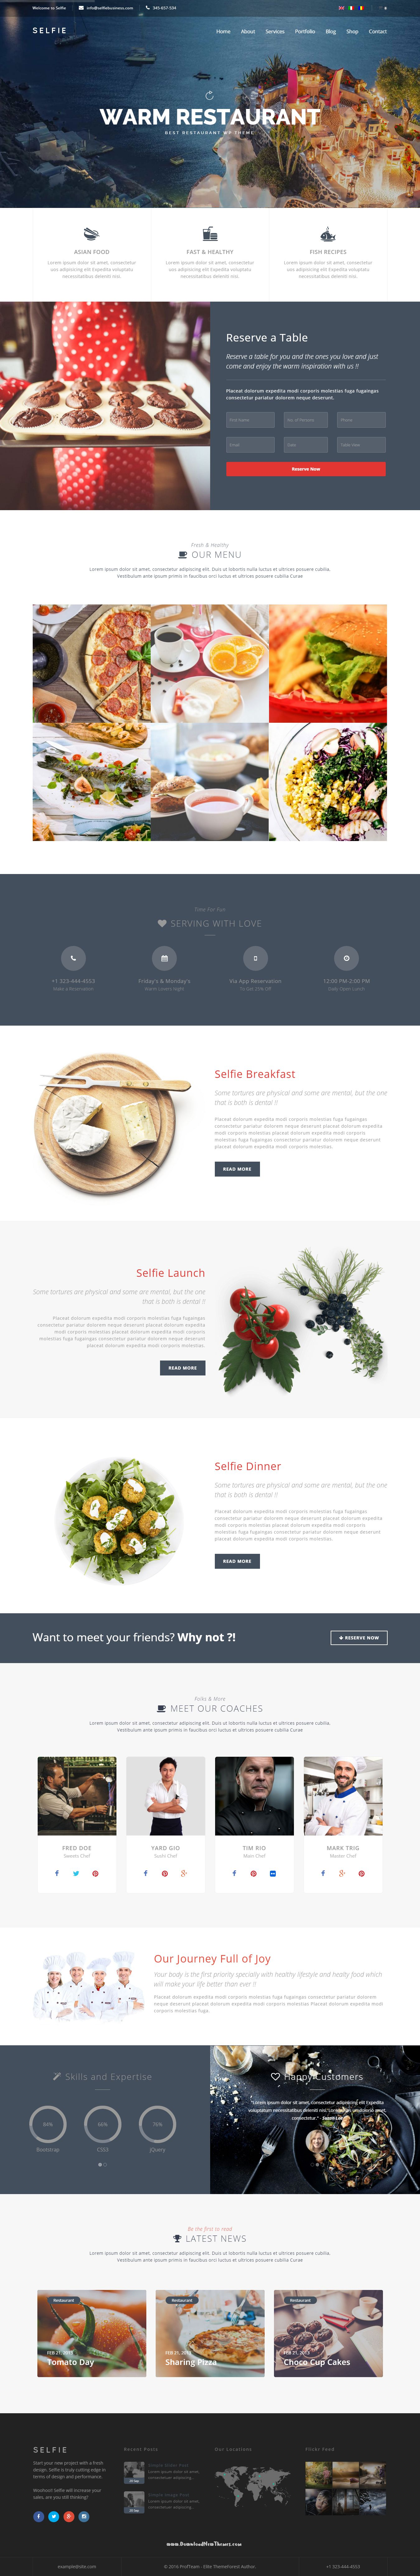 Selfie is a multi one page wordpress theme that